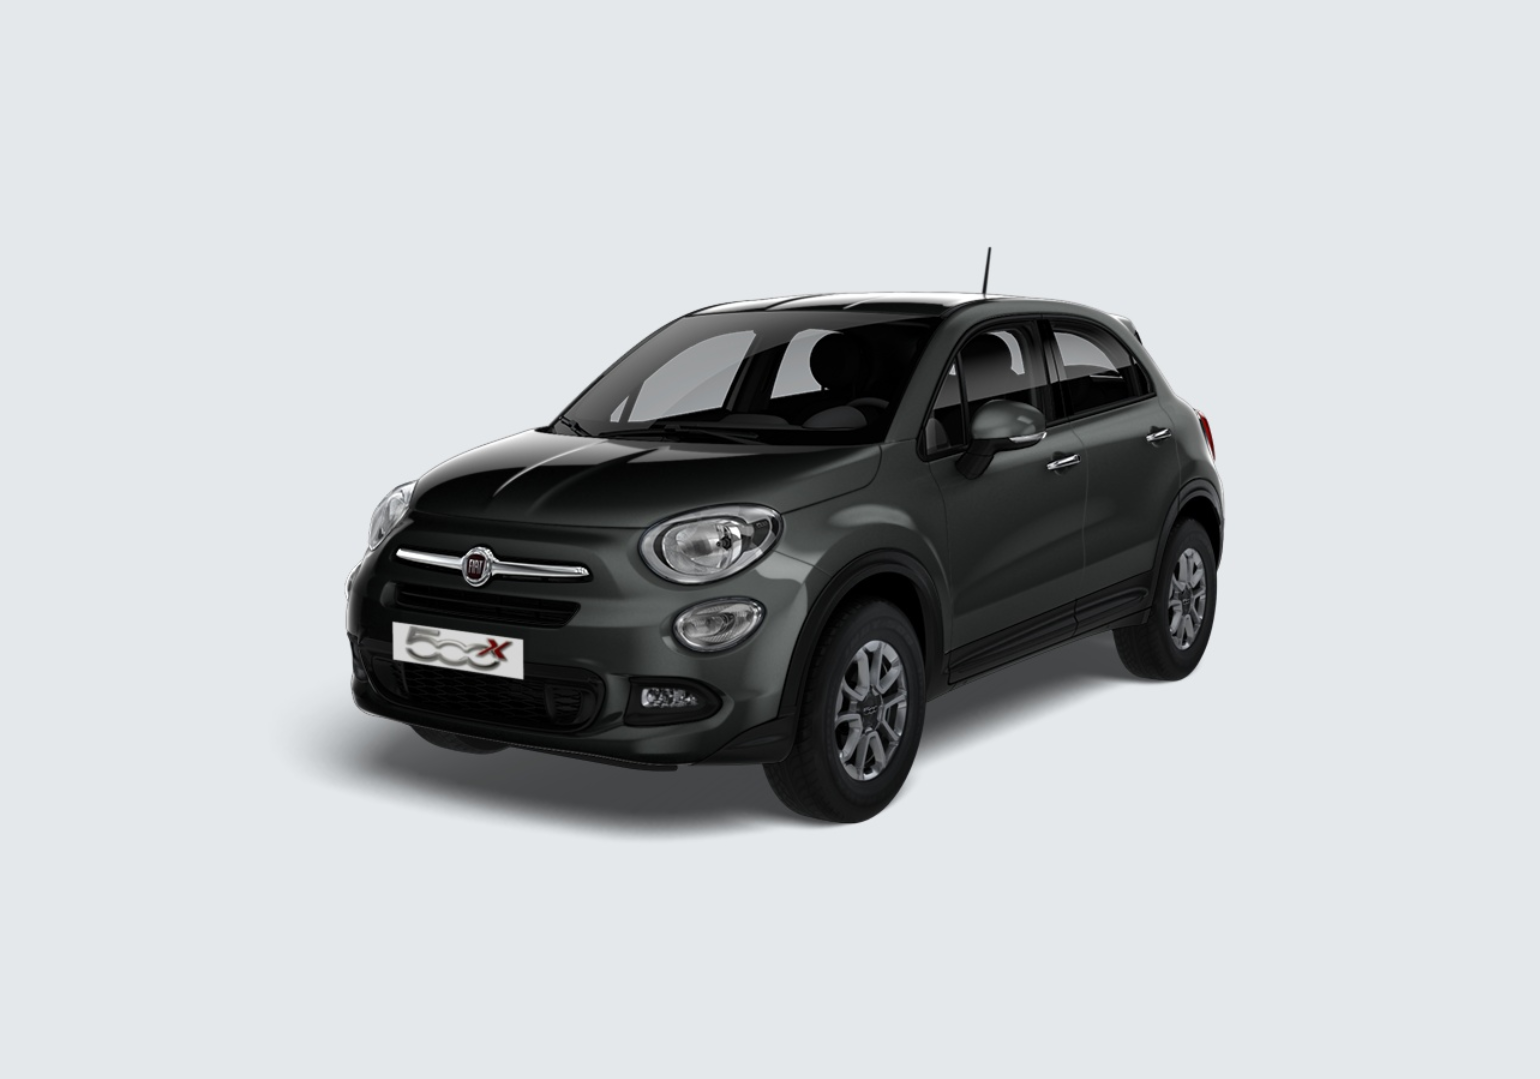 fiat 500x 1 3 multijet 95 cv pop star grigio moda nuova a soli 19680 su miacar uksfe. Black Bedroom Furniture Sets. Home Design Ideas